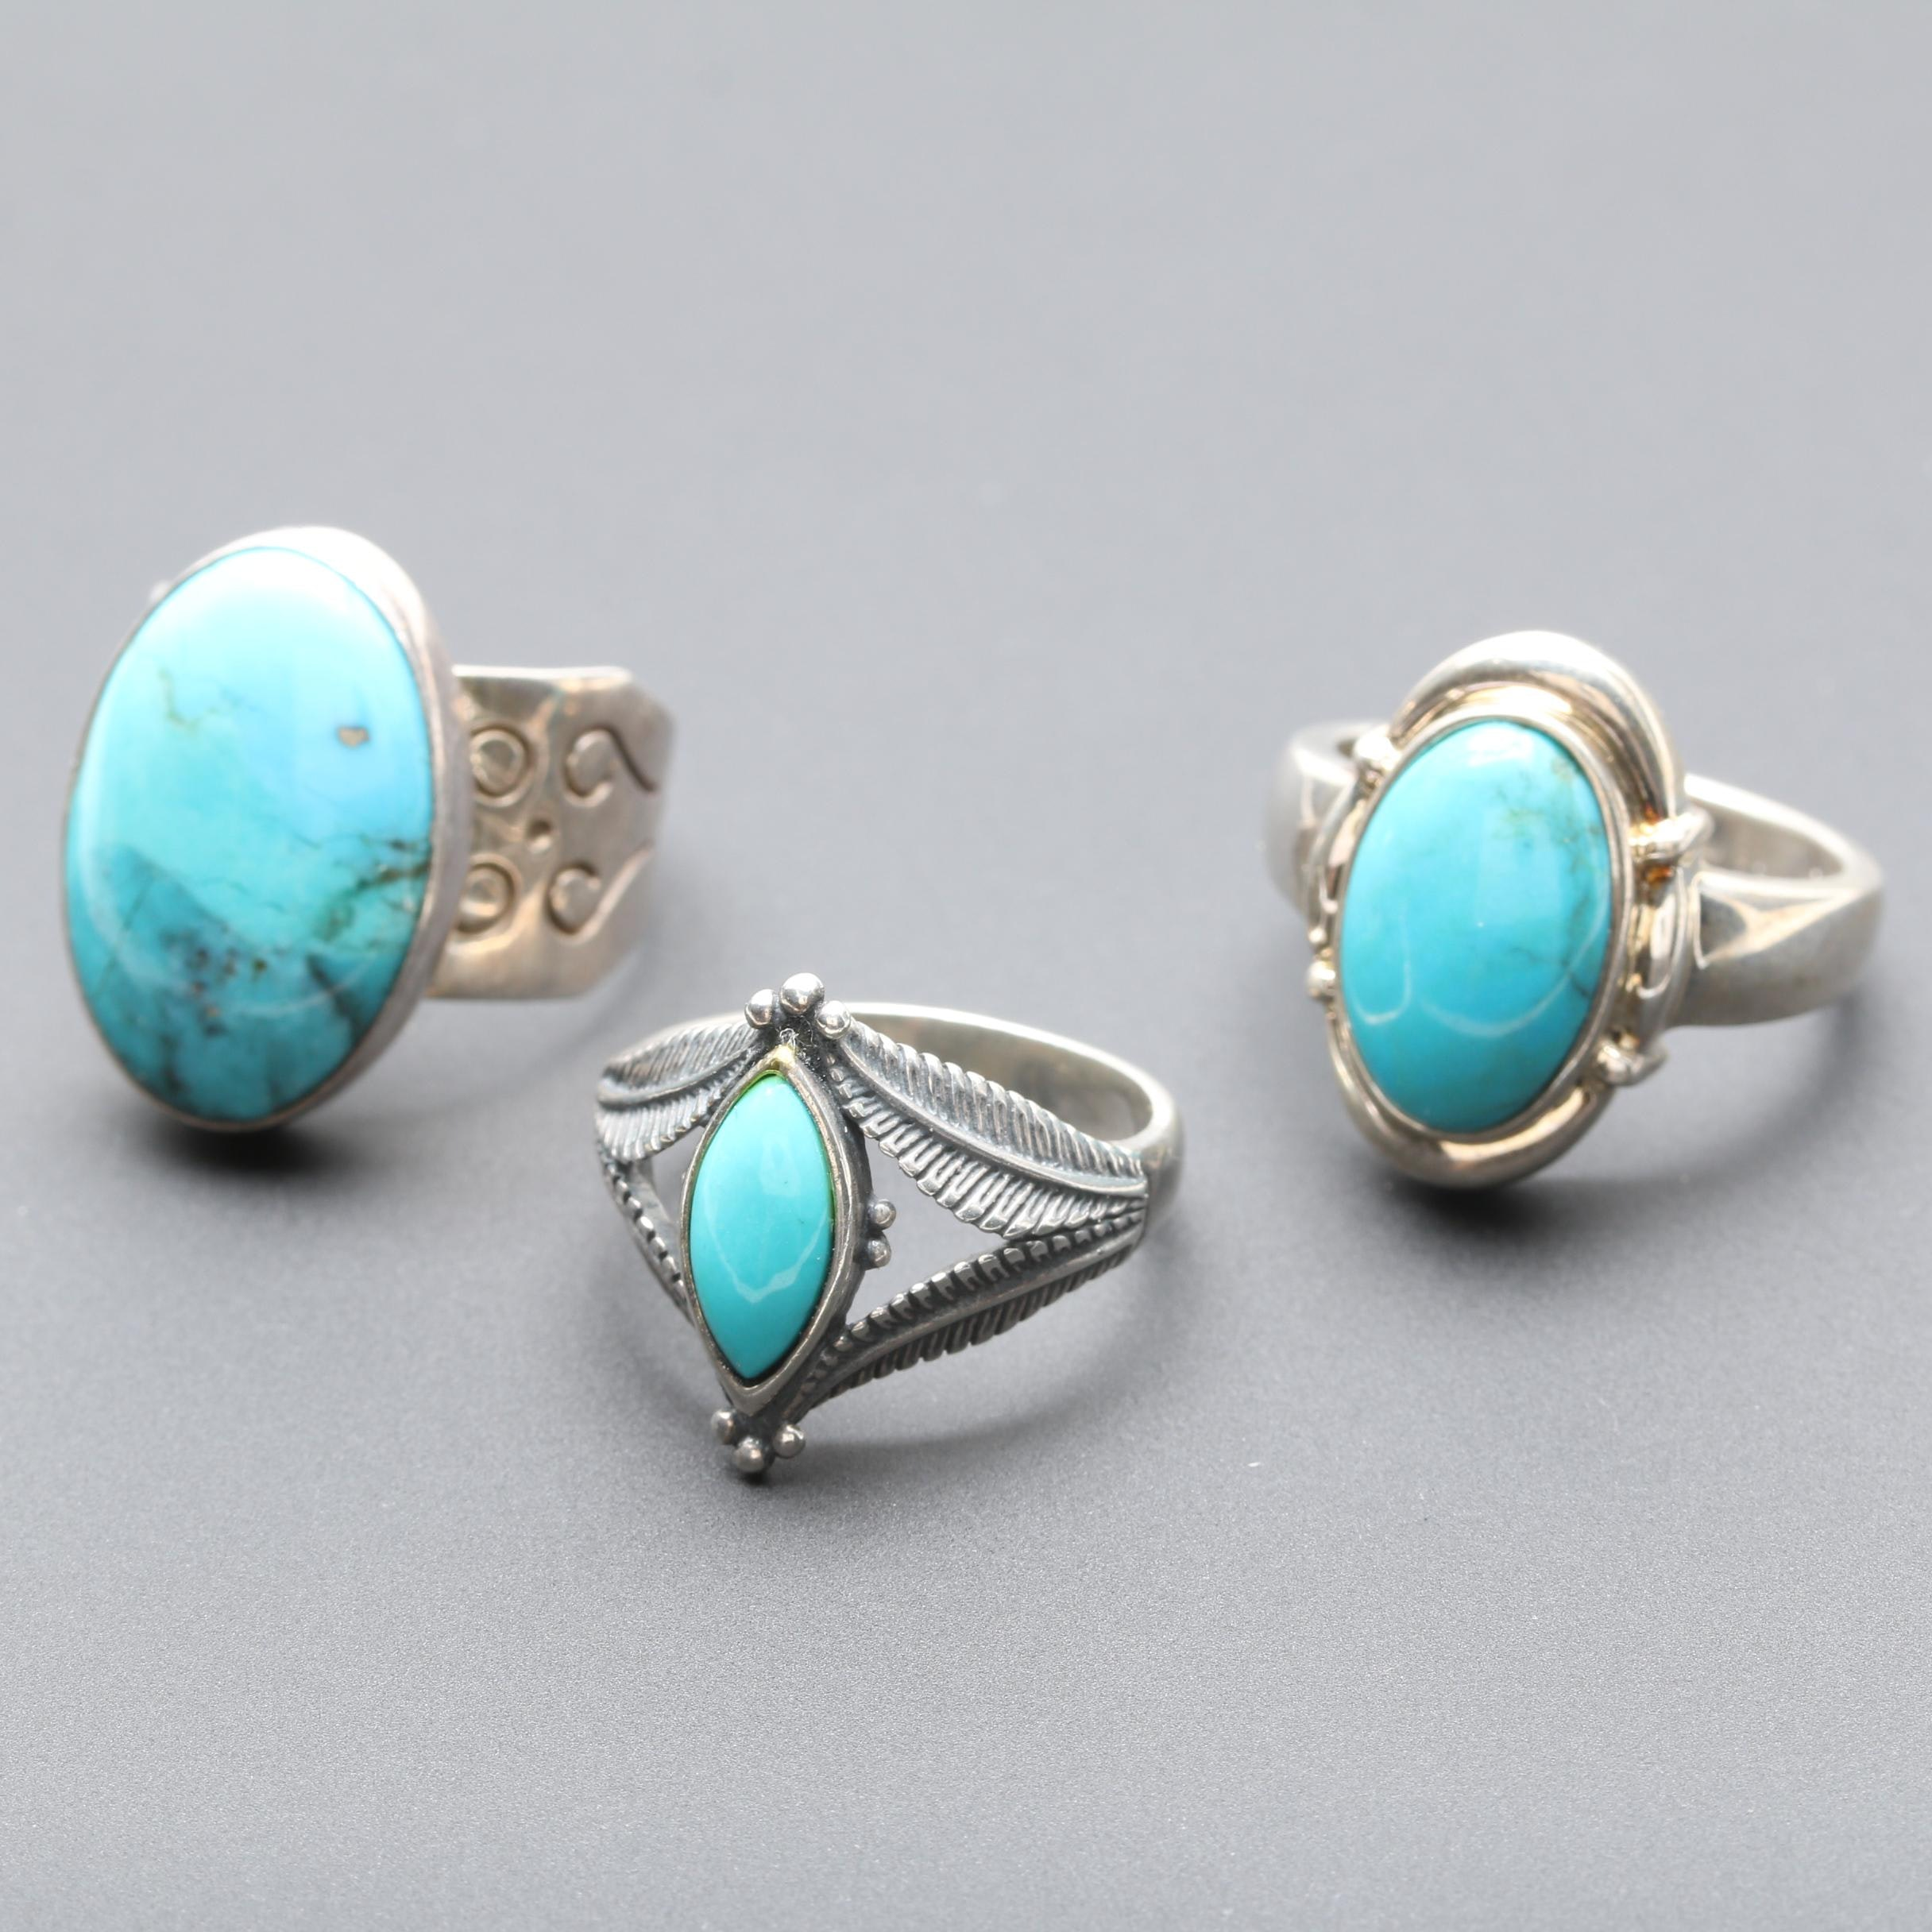 Sterling Silver Turquoise Rings Including Relios and Desert Rose Trading